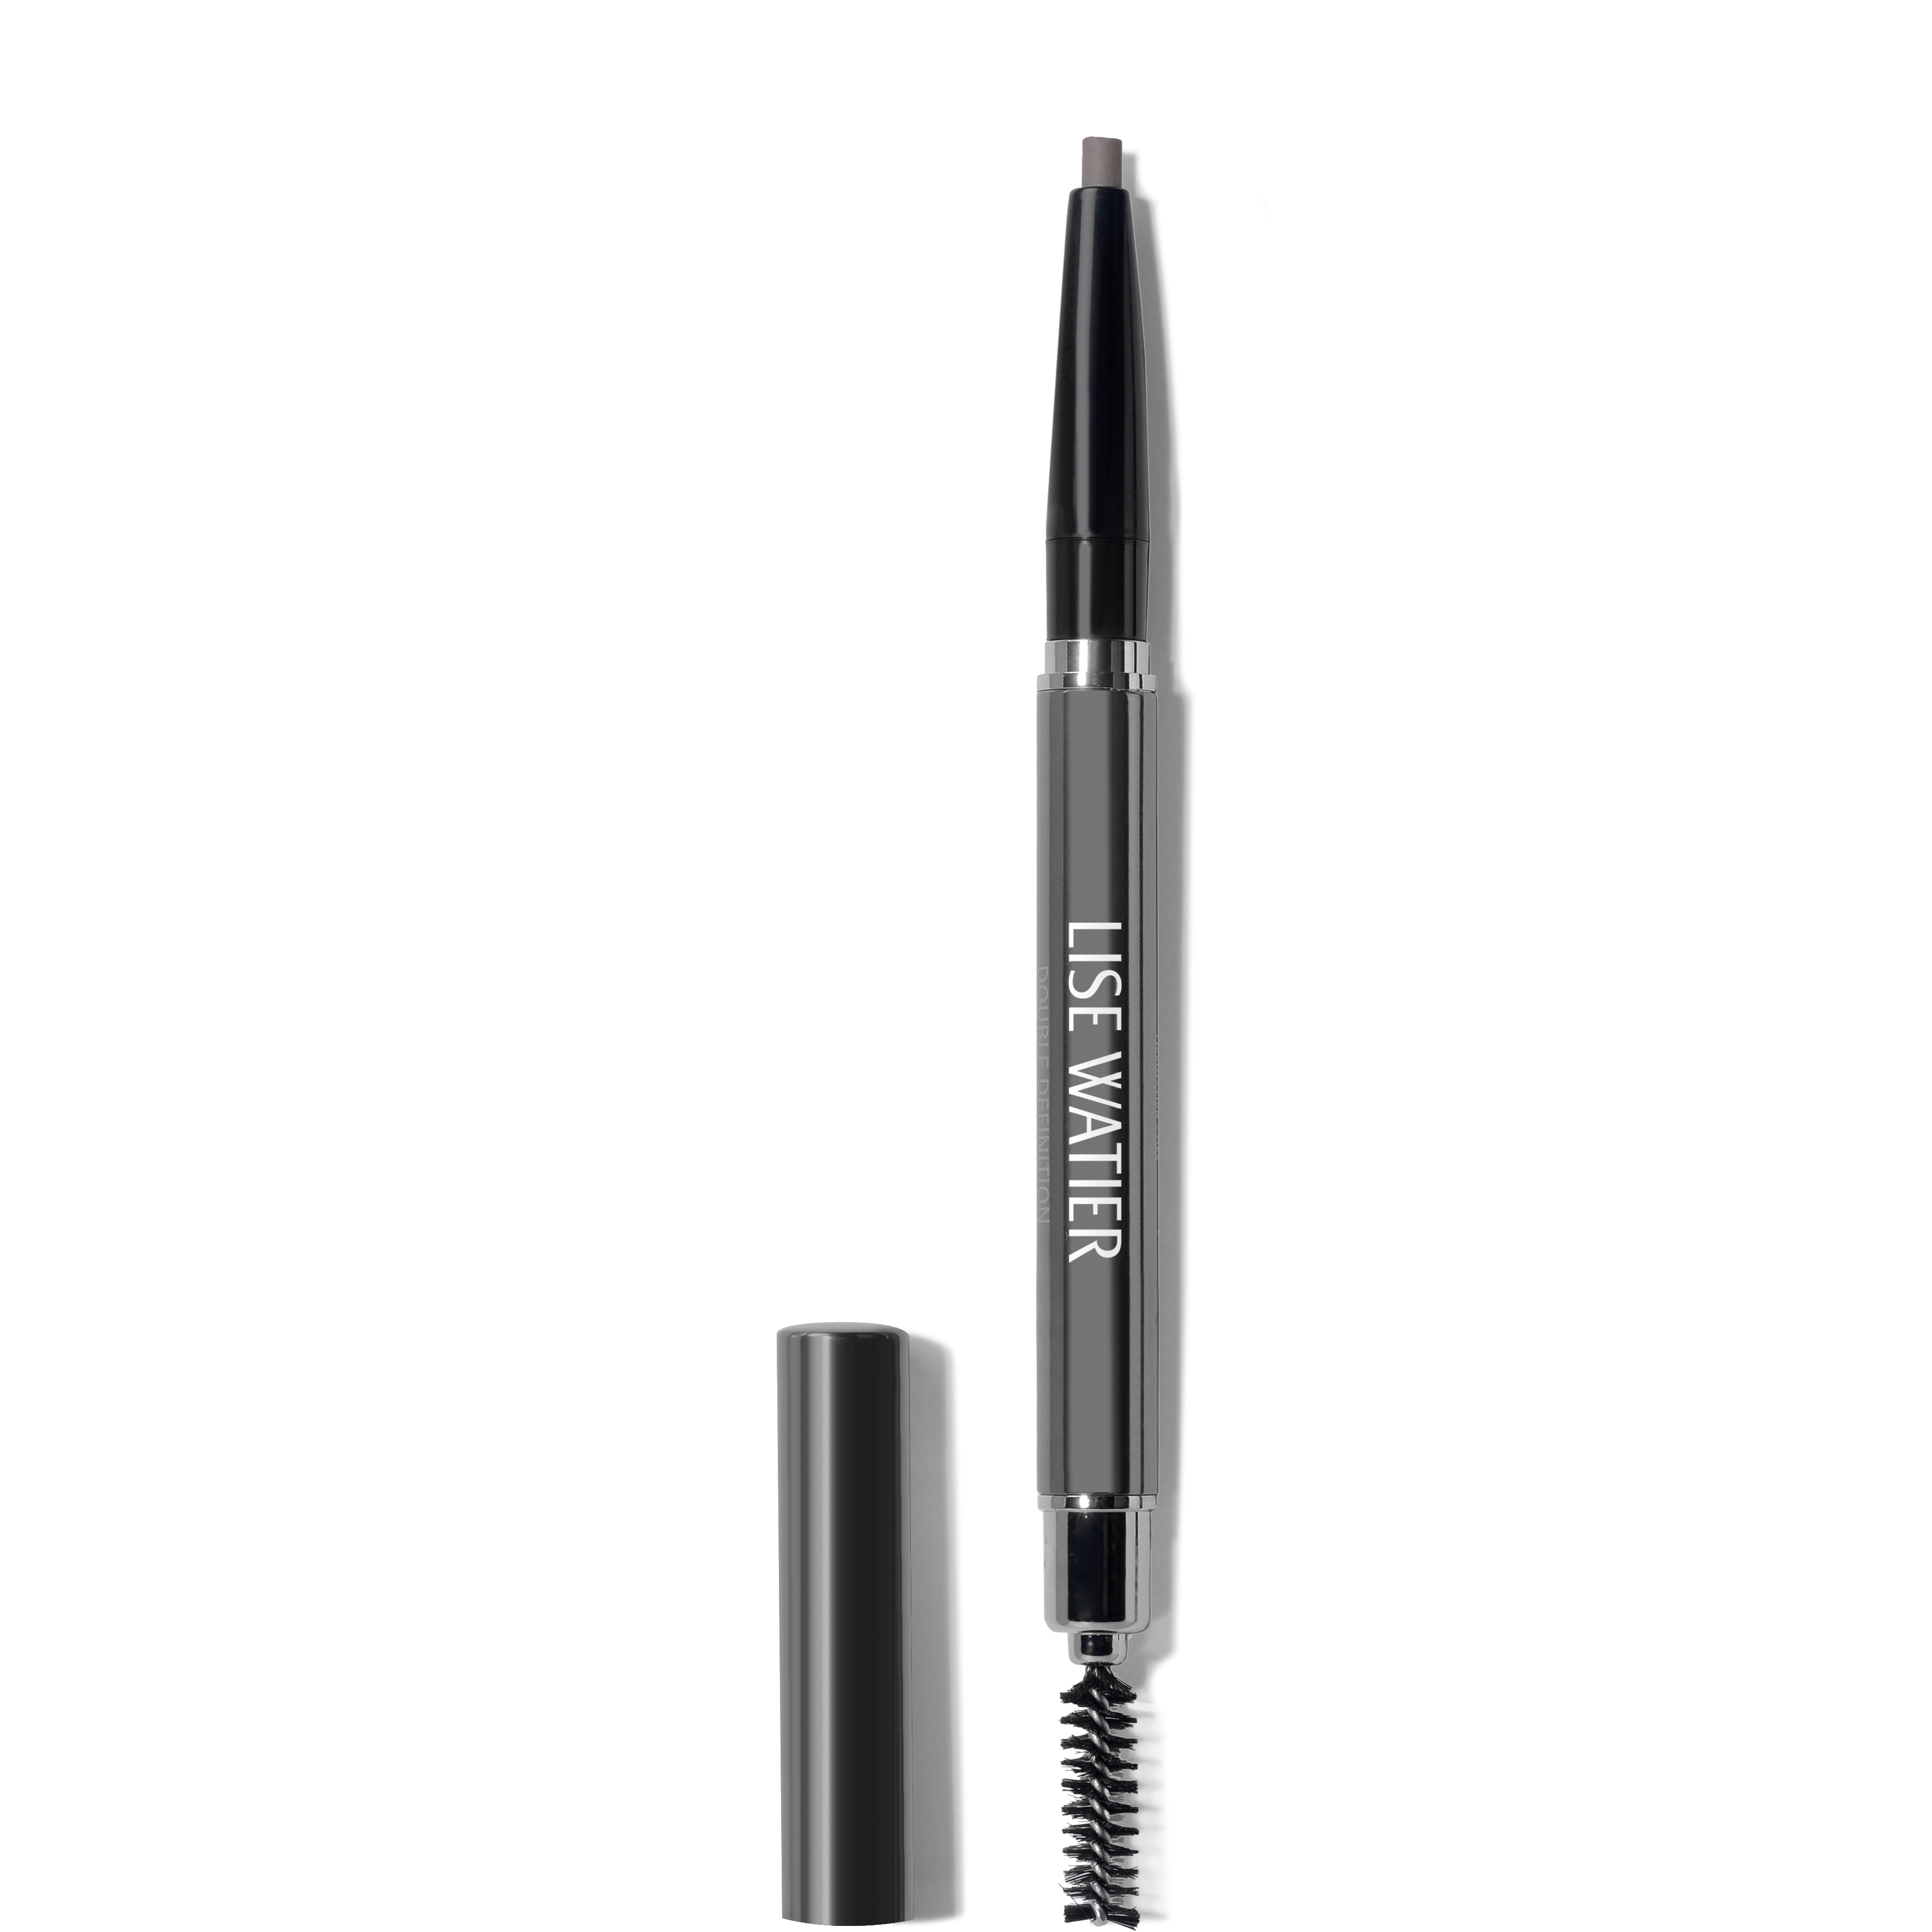 Lise Watier Double Ended Brow Definer